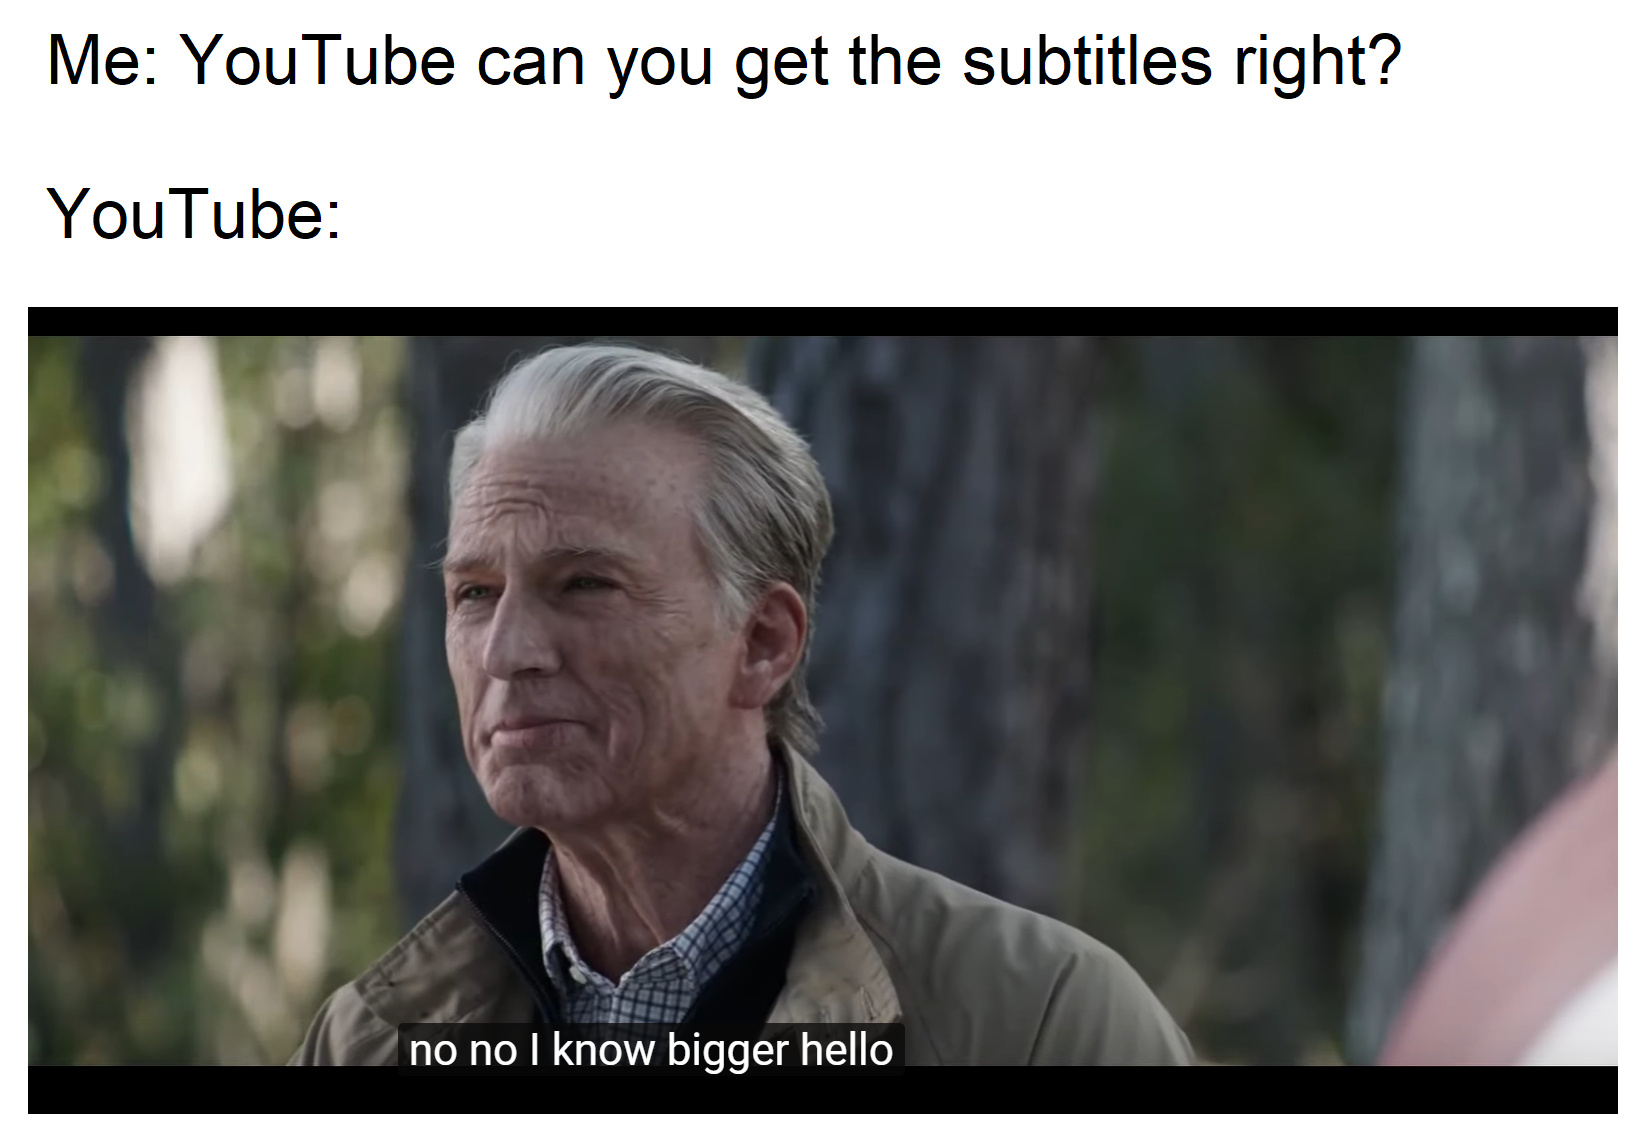 Can YouTube get the subtitles right? - meme